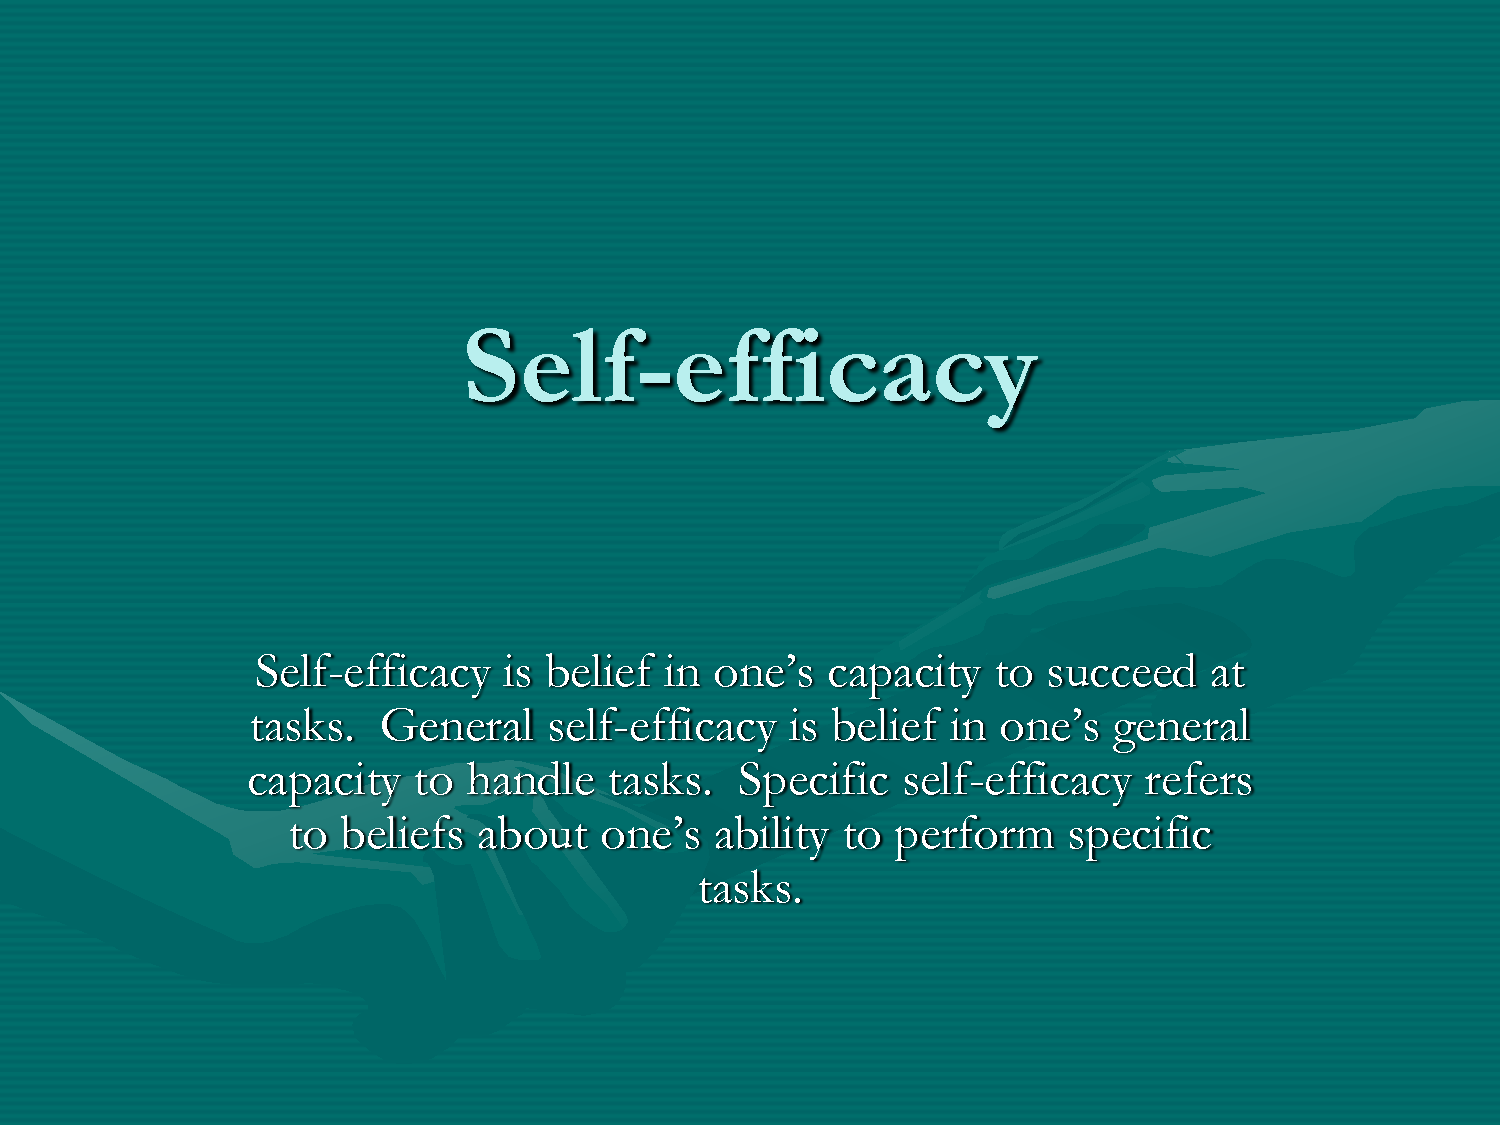 Selfefficacy (With images) Self efficacy, Educational